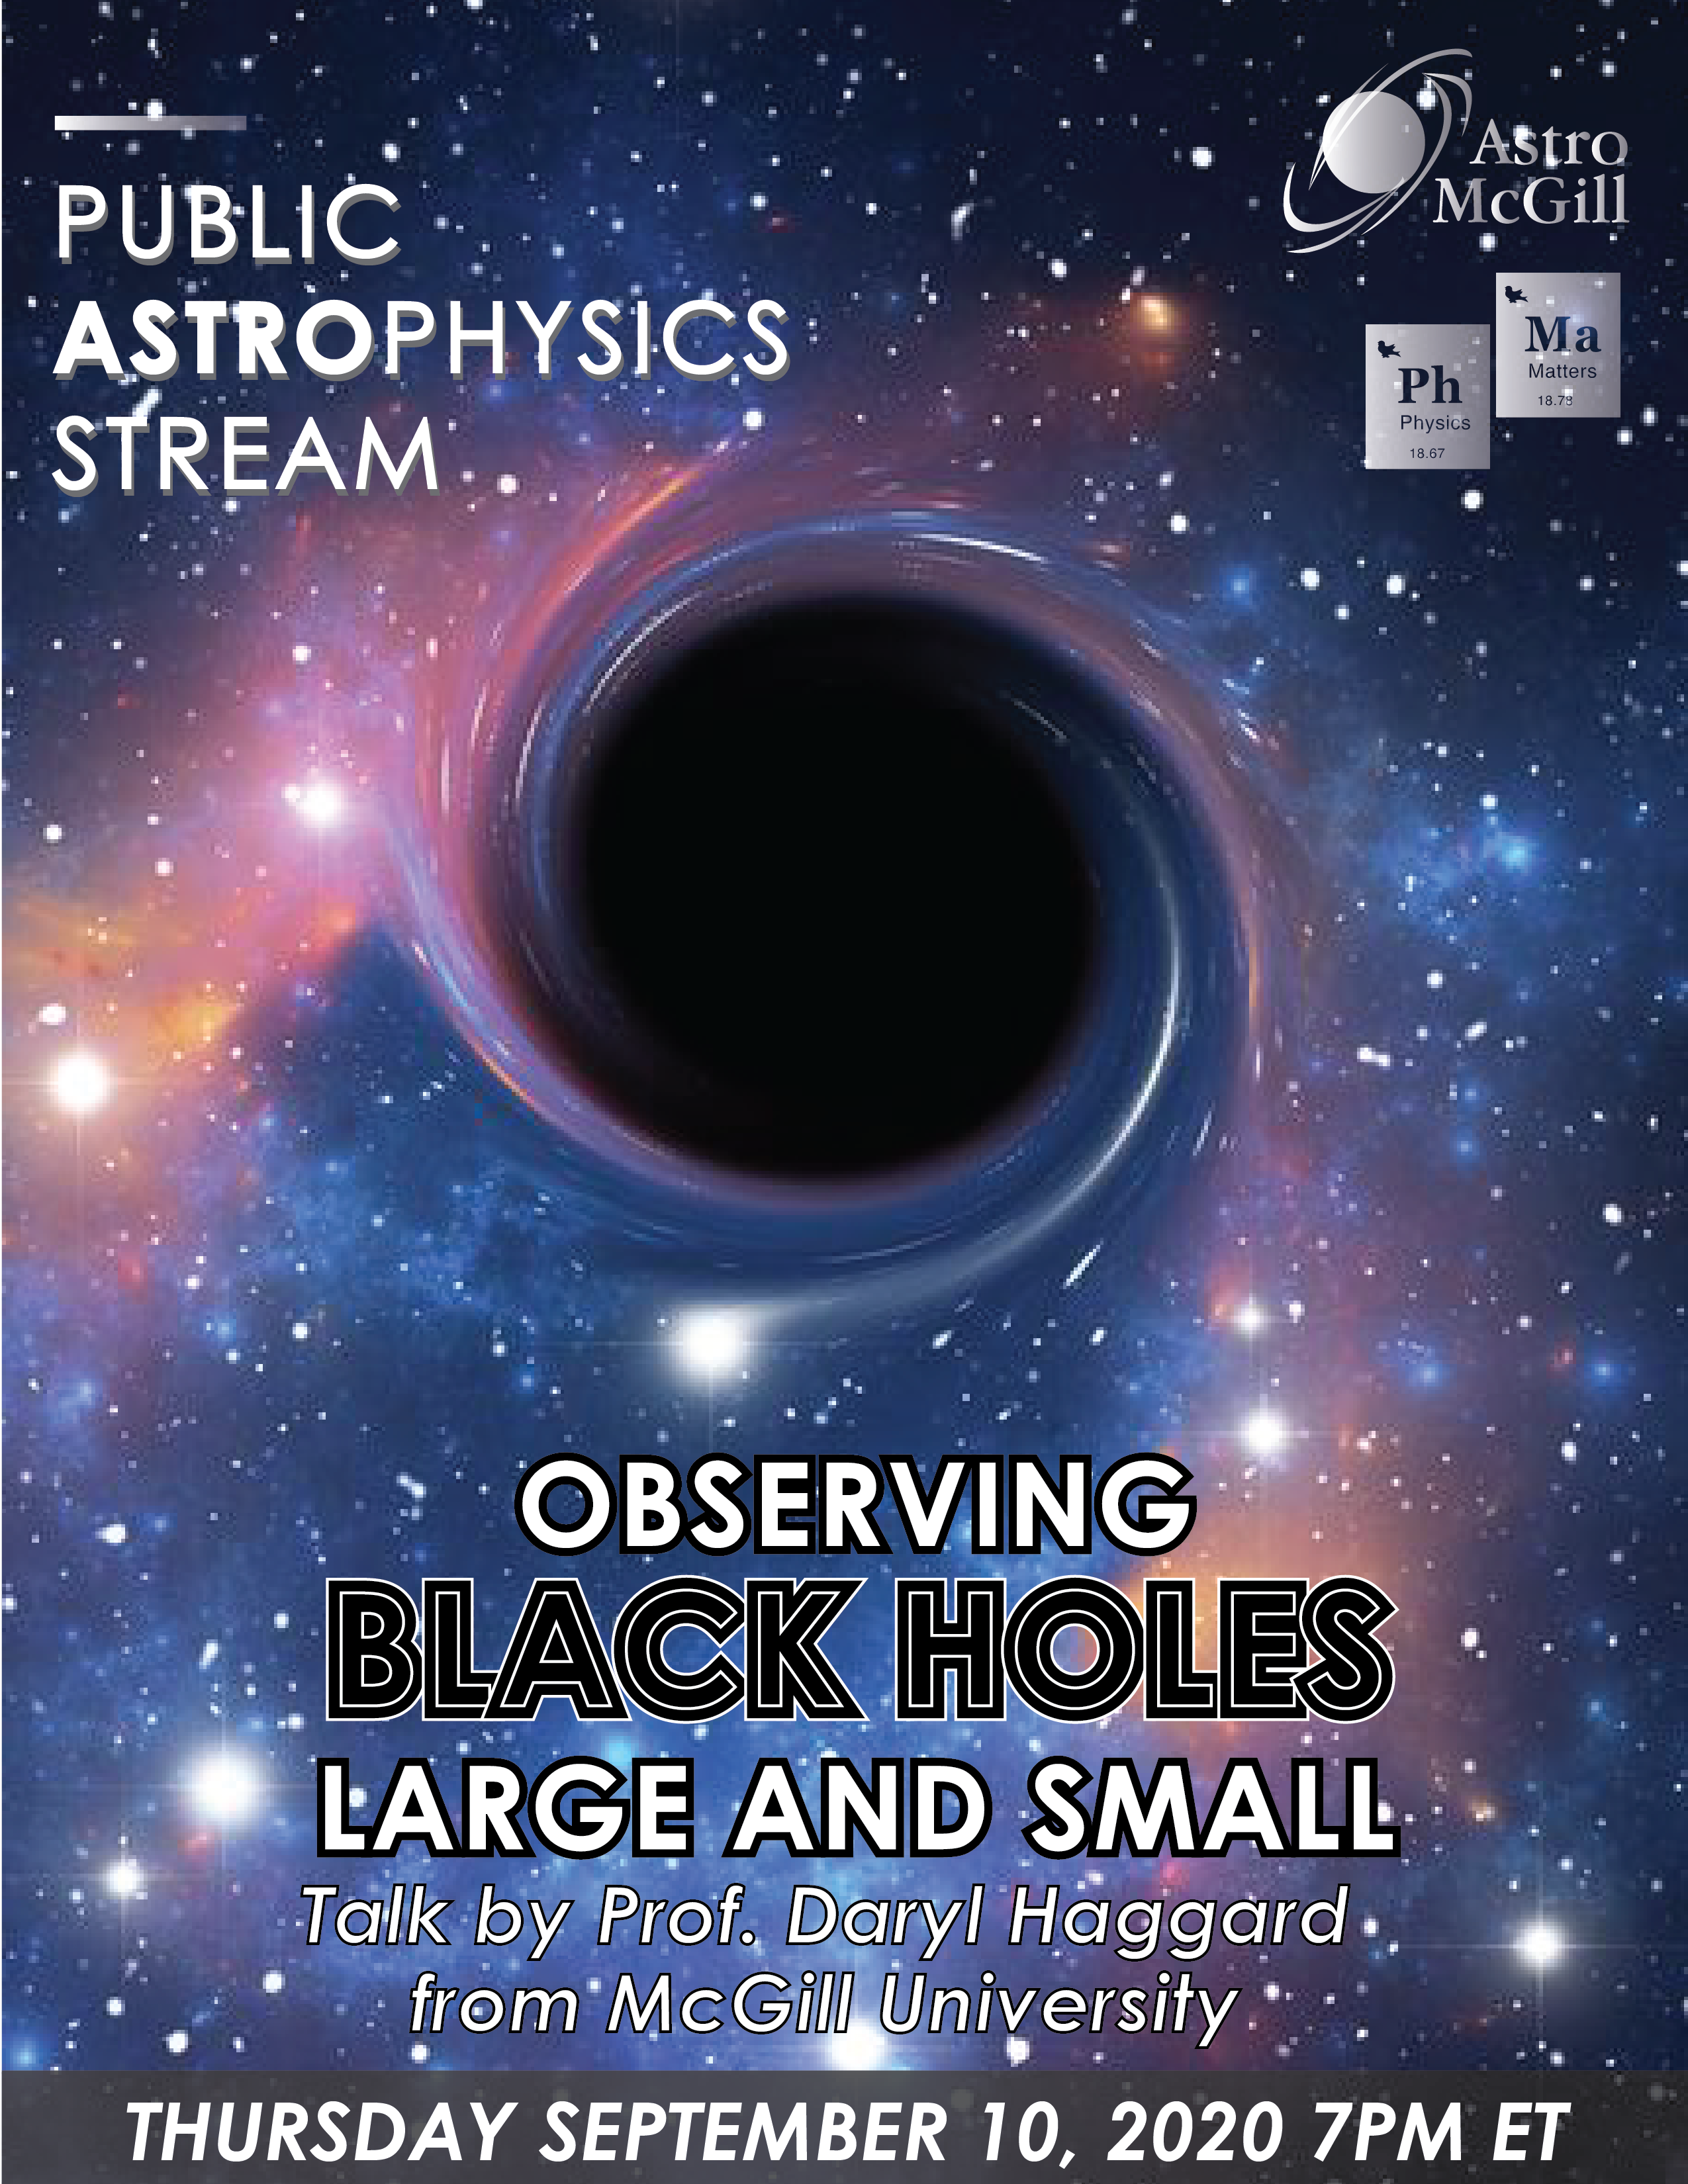 Observing Black Holes Large and Small